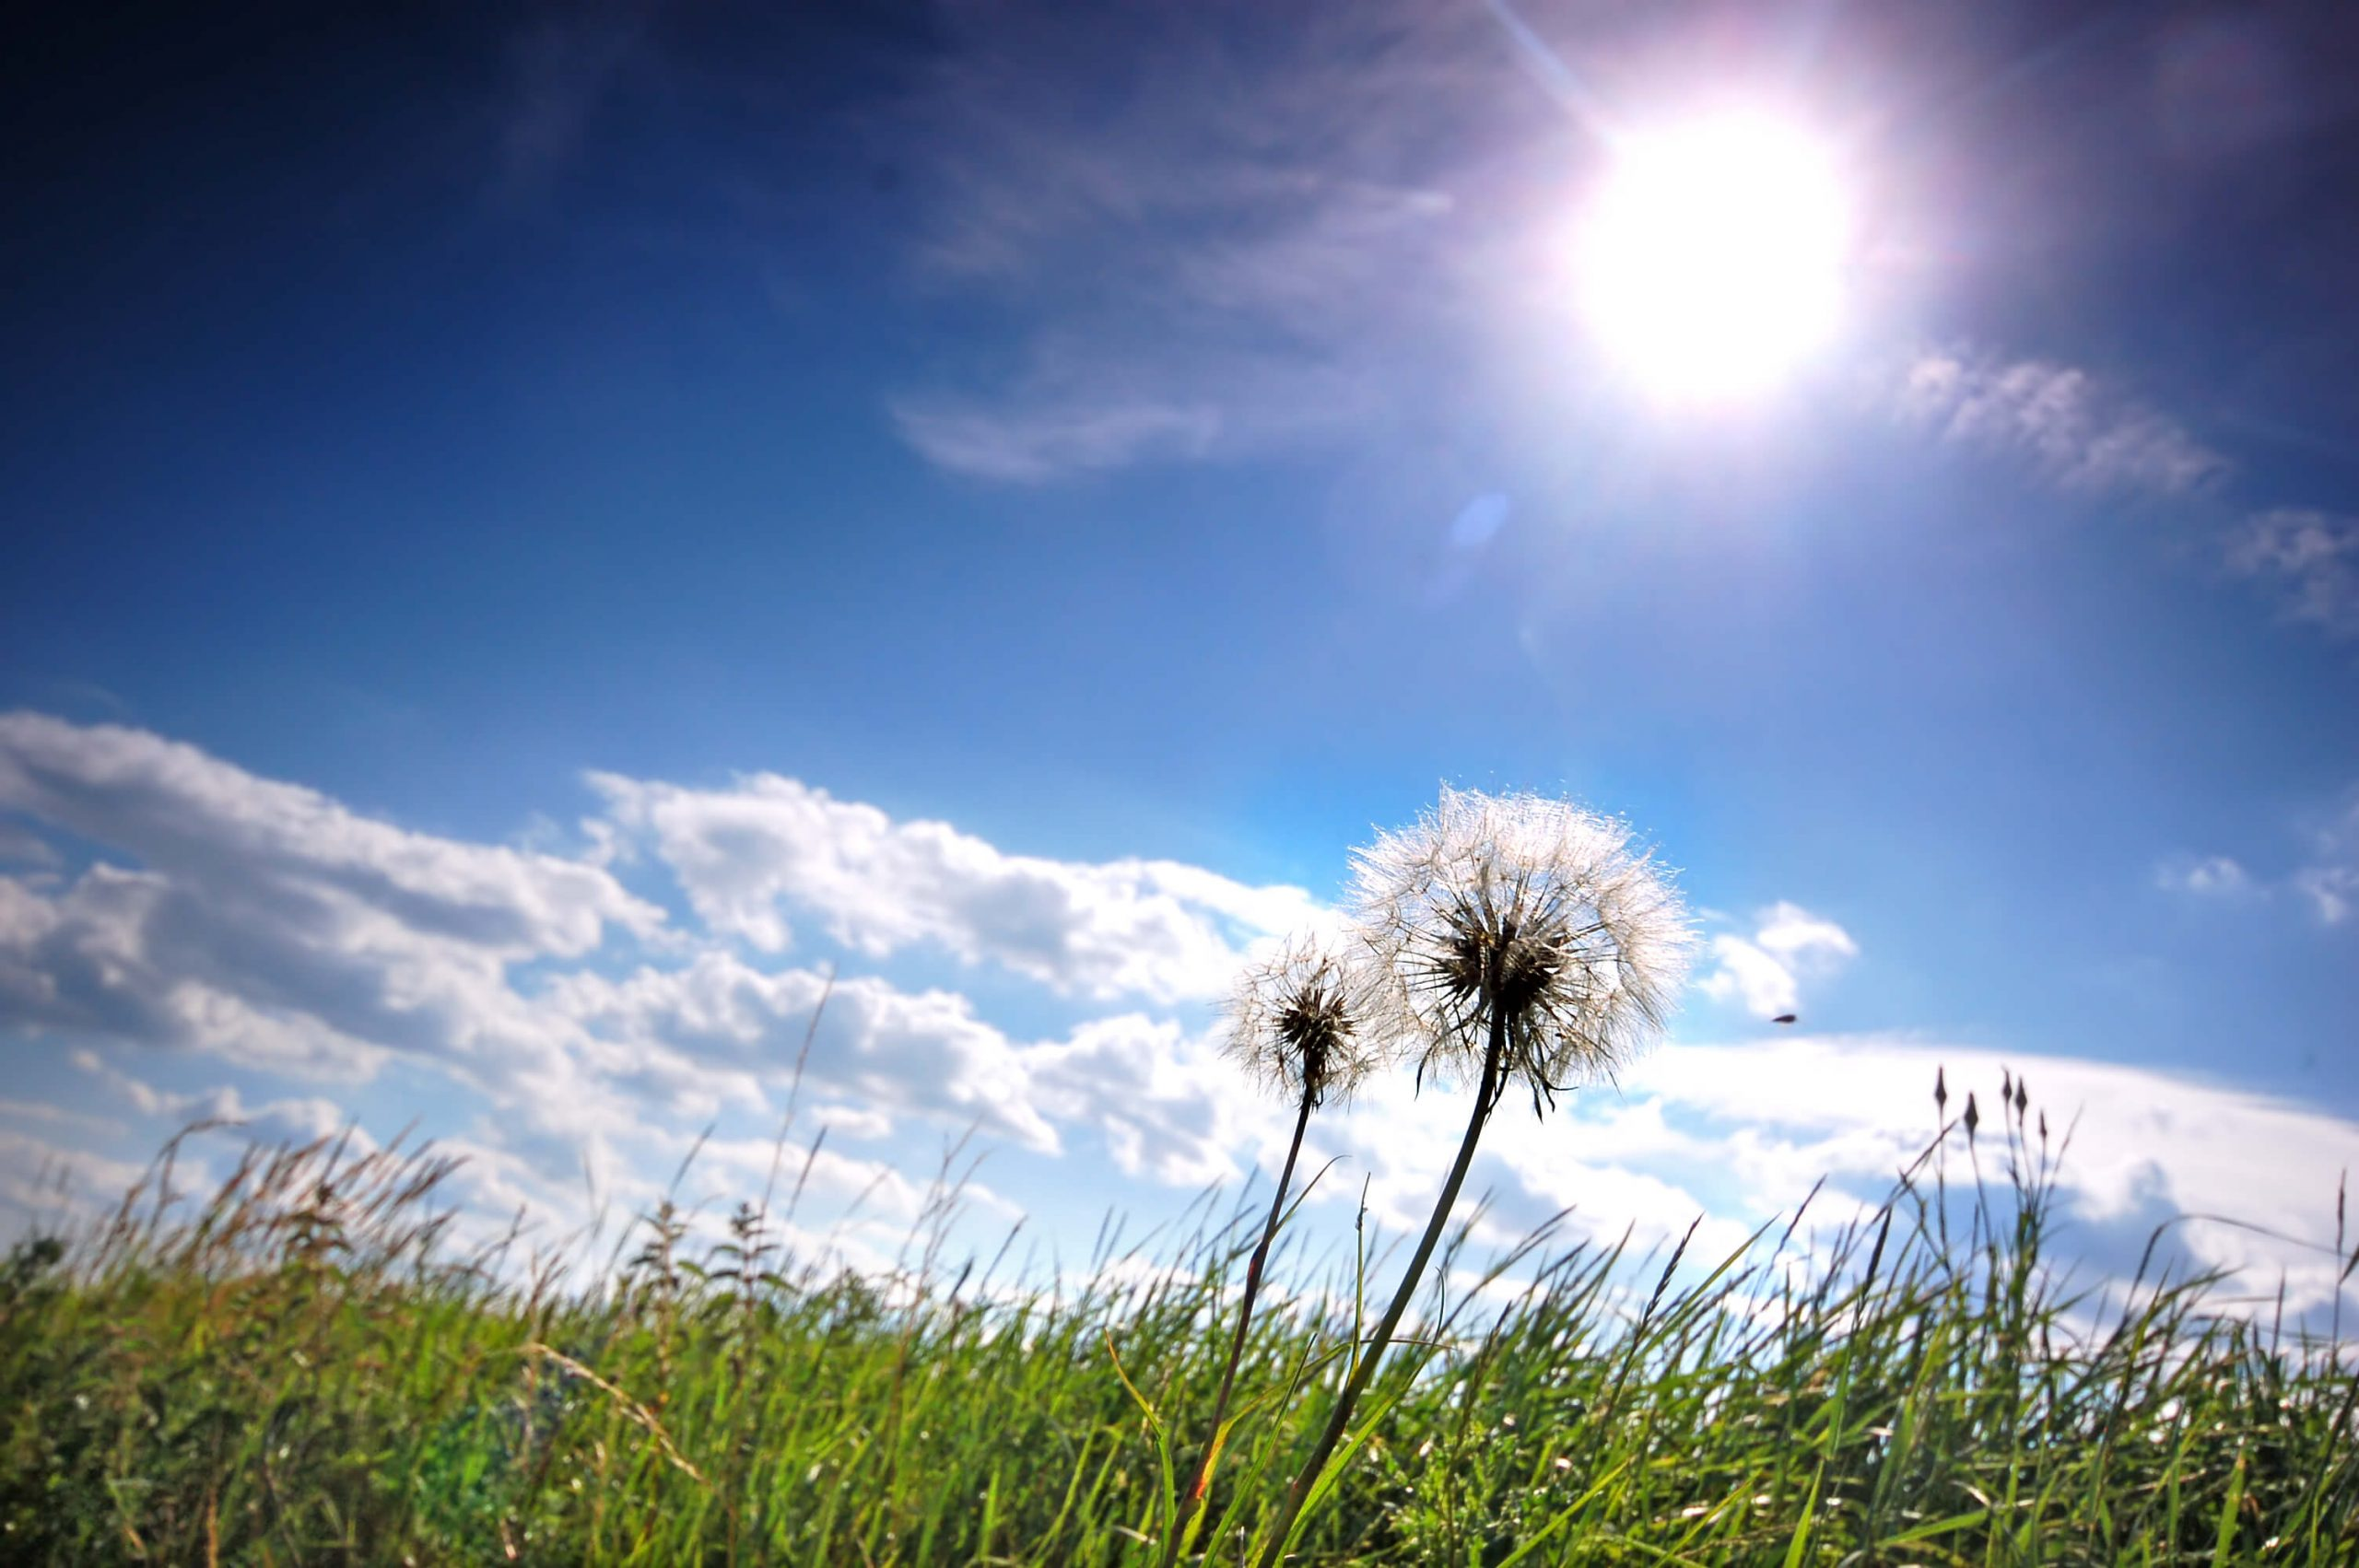 Dandelions in a meadow on a sunny day.